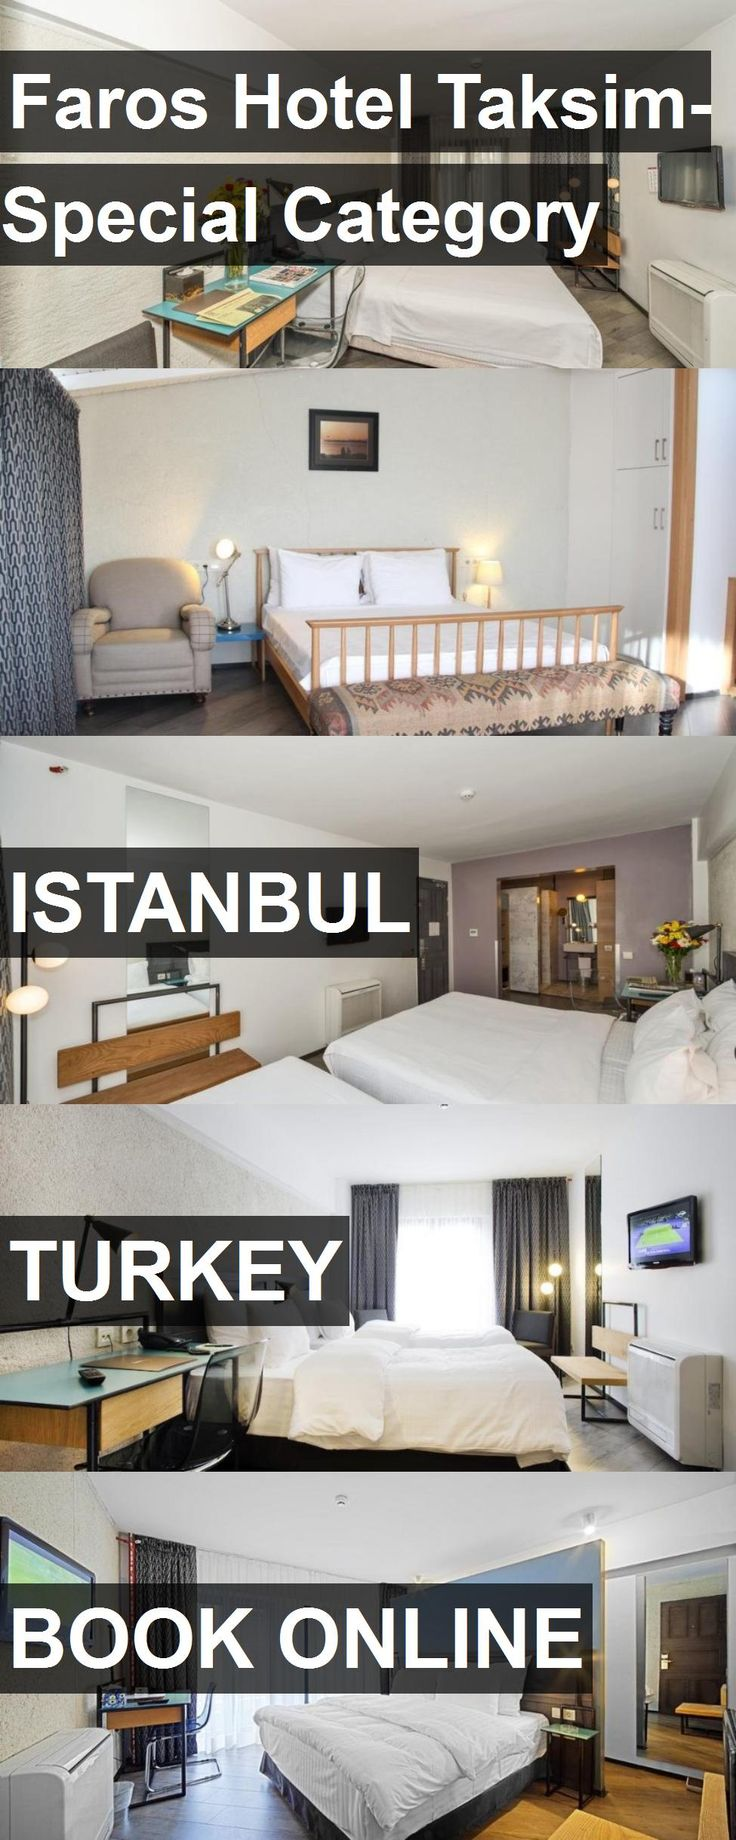 Hotel Faros Hotel Taksim-Special Category in Istanbul, Turkey. For more information, photos, reviews and best prices please follow the link. #Turkey #Istanbul #FarosHotelTaksim-SpecialCategory #hotel #travel #vacation